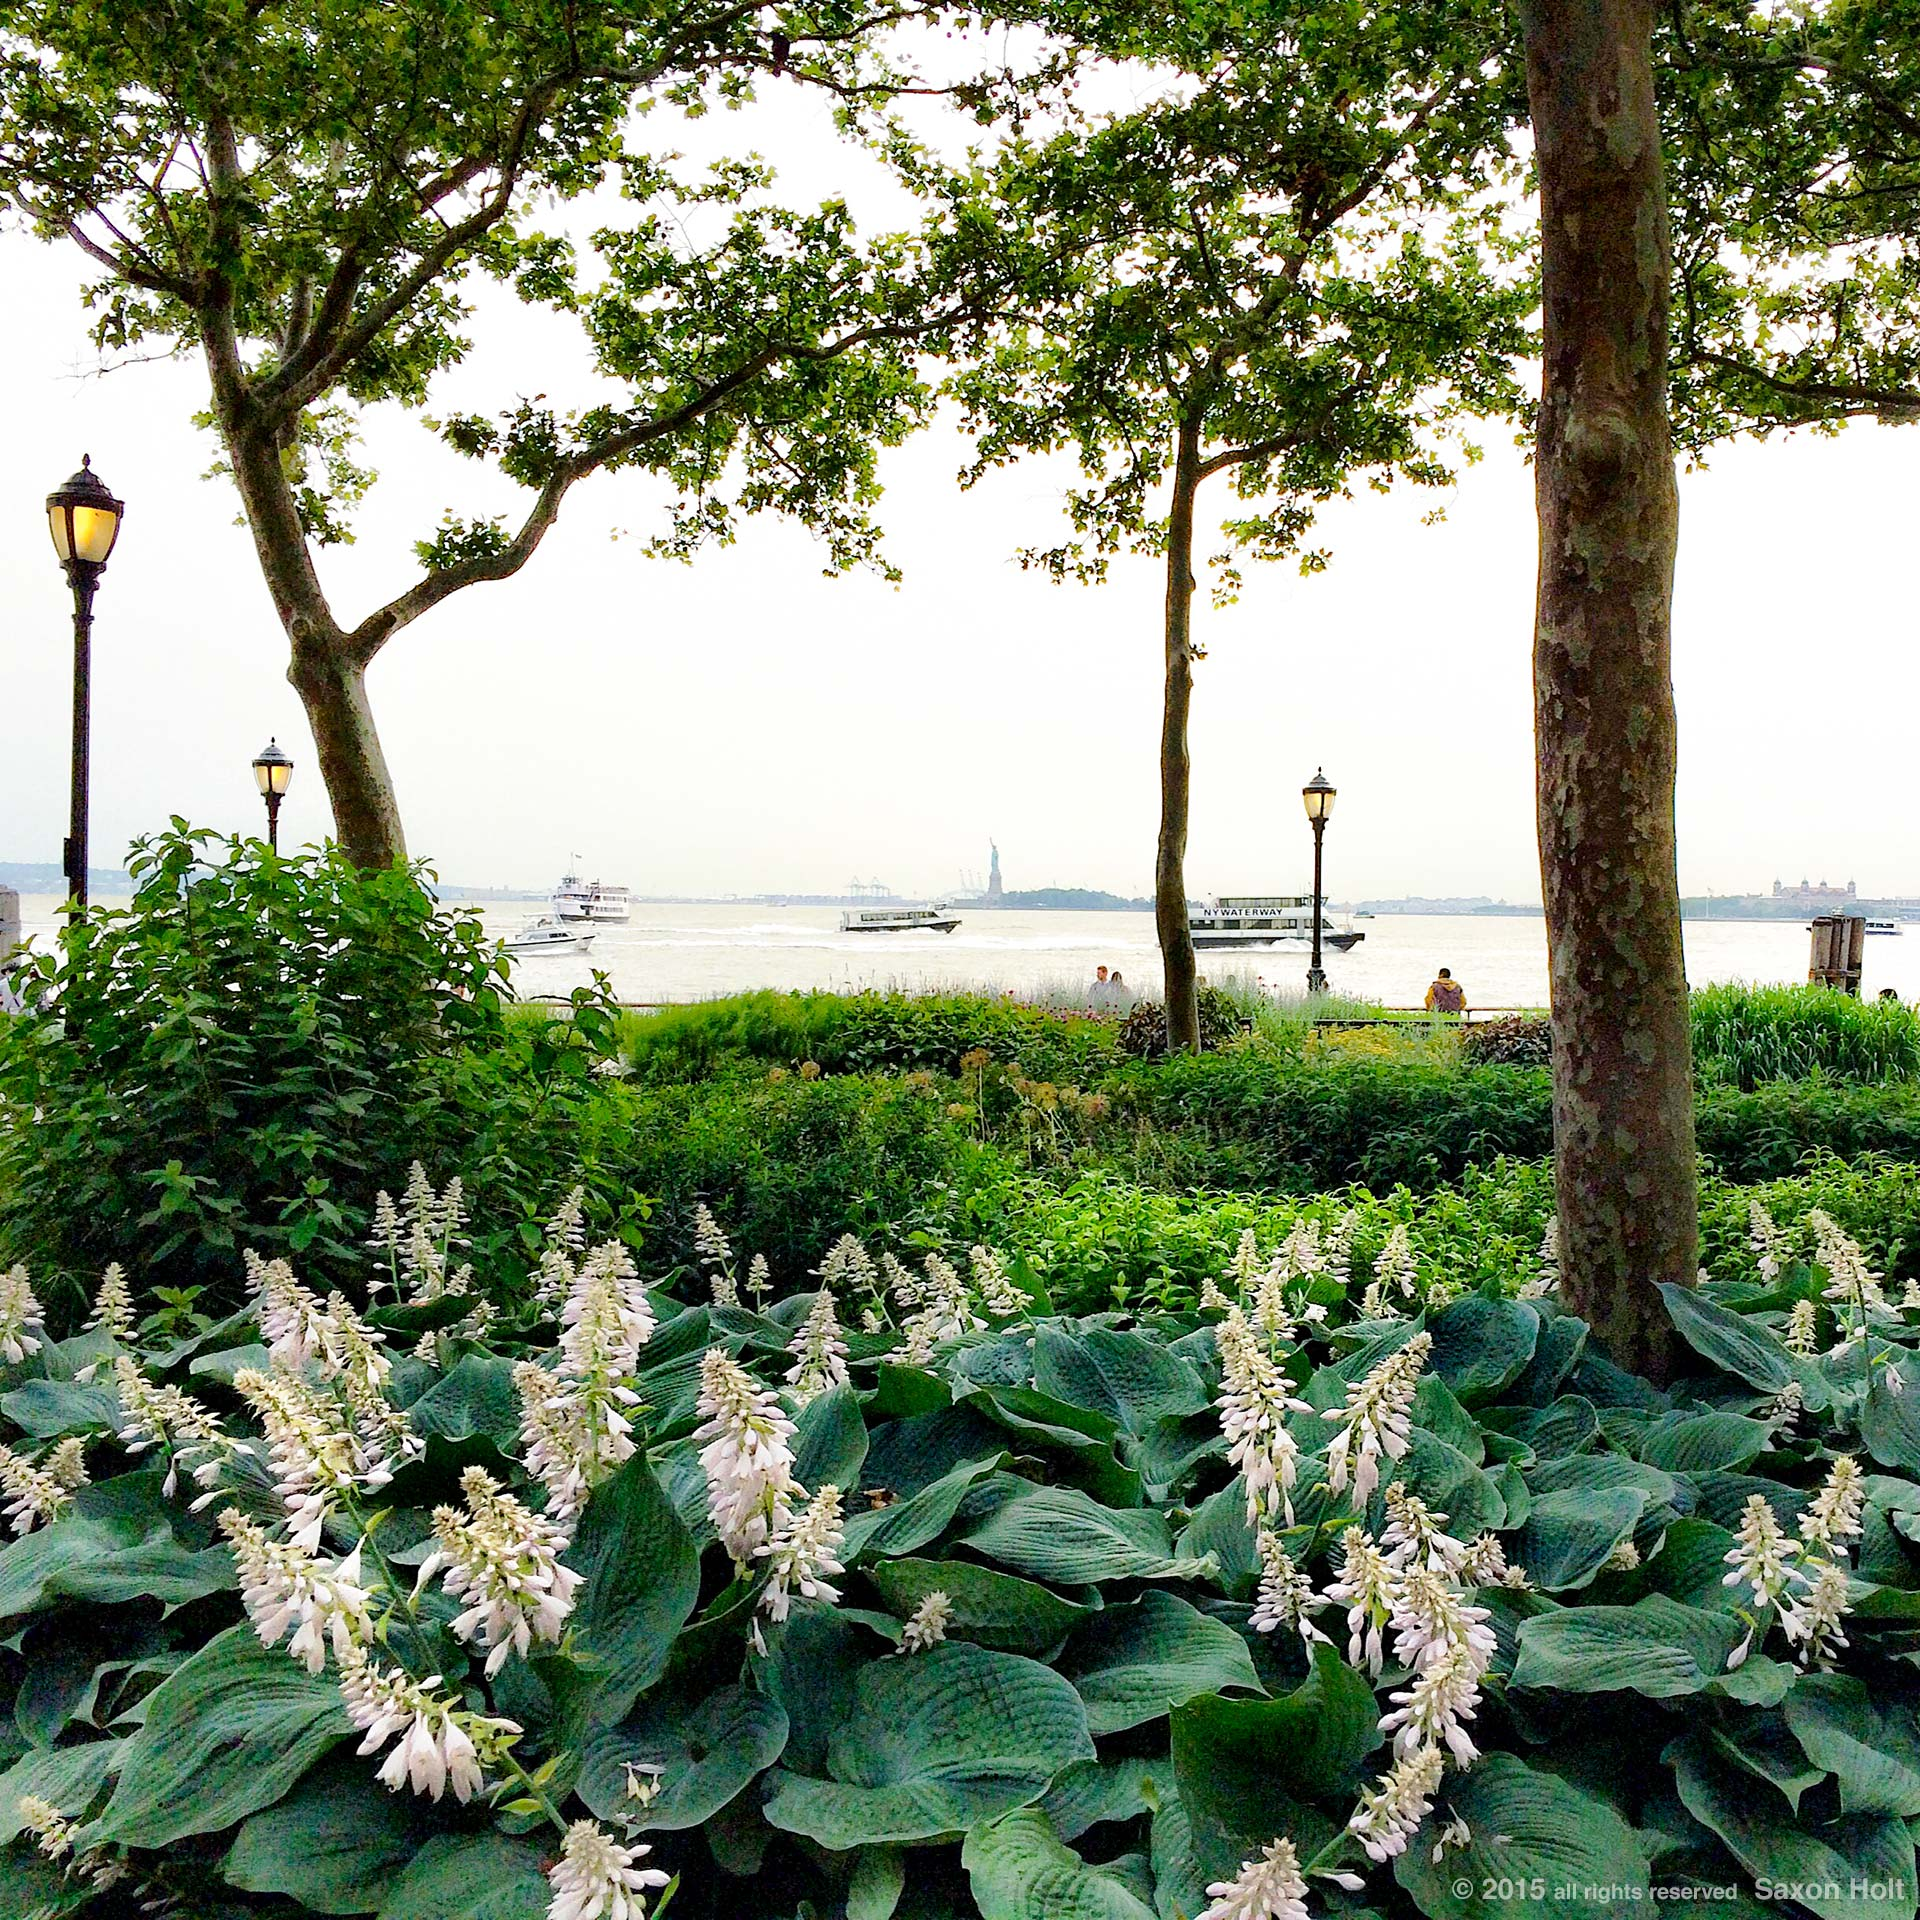 Battery Park, New York City; view of Statue of Liberty with Hosta